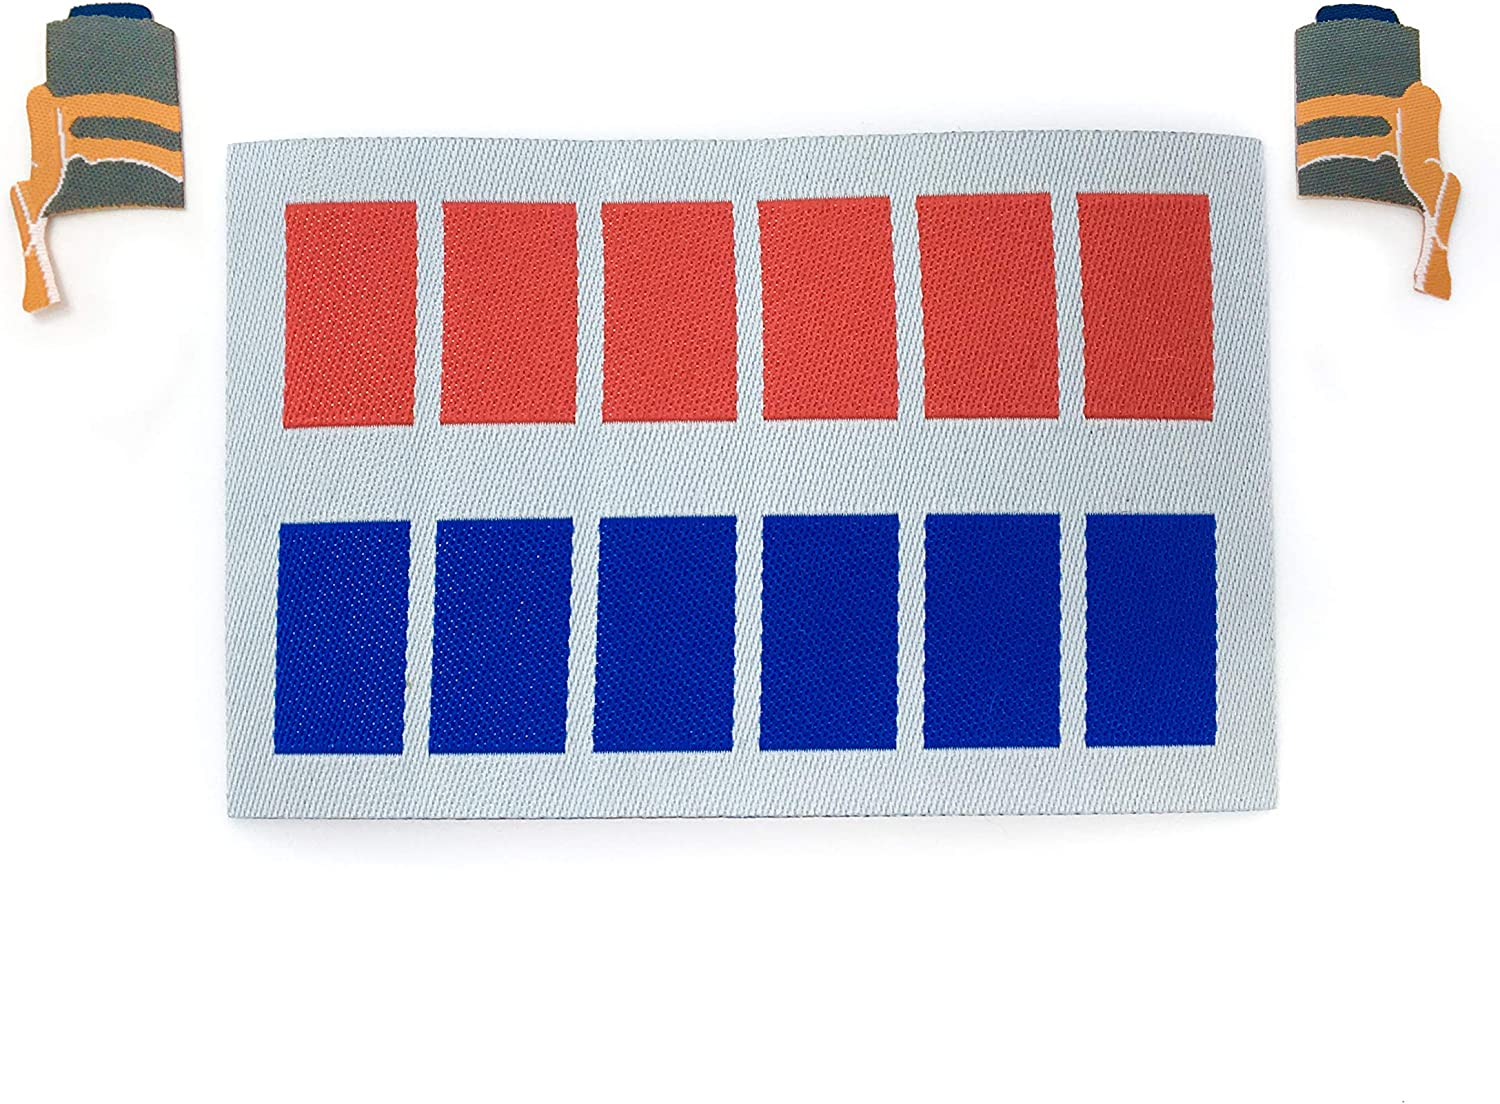 Admiral - Imperial Officer Rank Insignia Iron-on Patch, Star Wars Woven Fabric Emblem Plaque Bar, Cosplay 501st Legion Costume - Machine Washable Safe